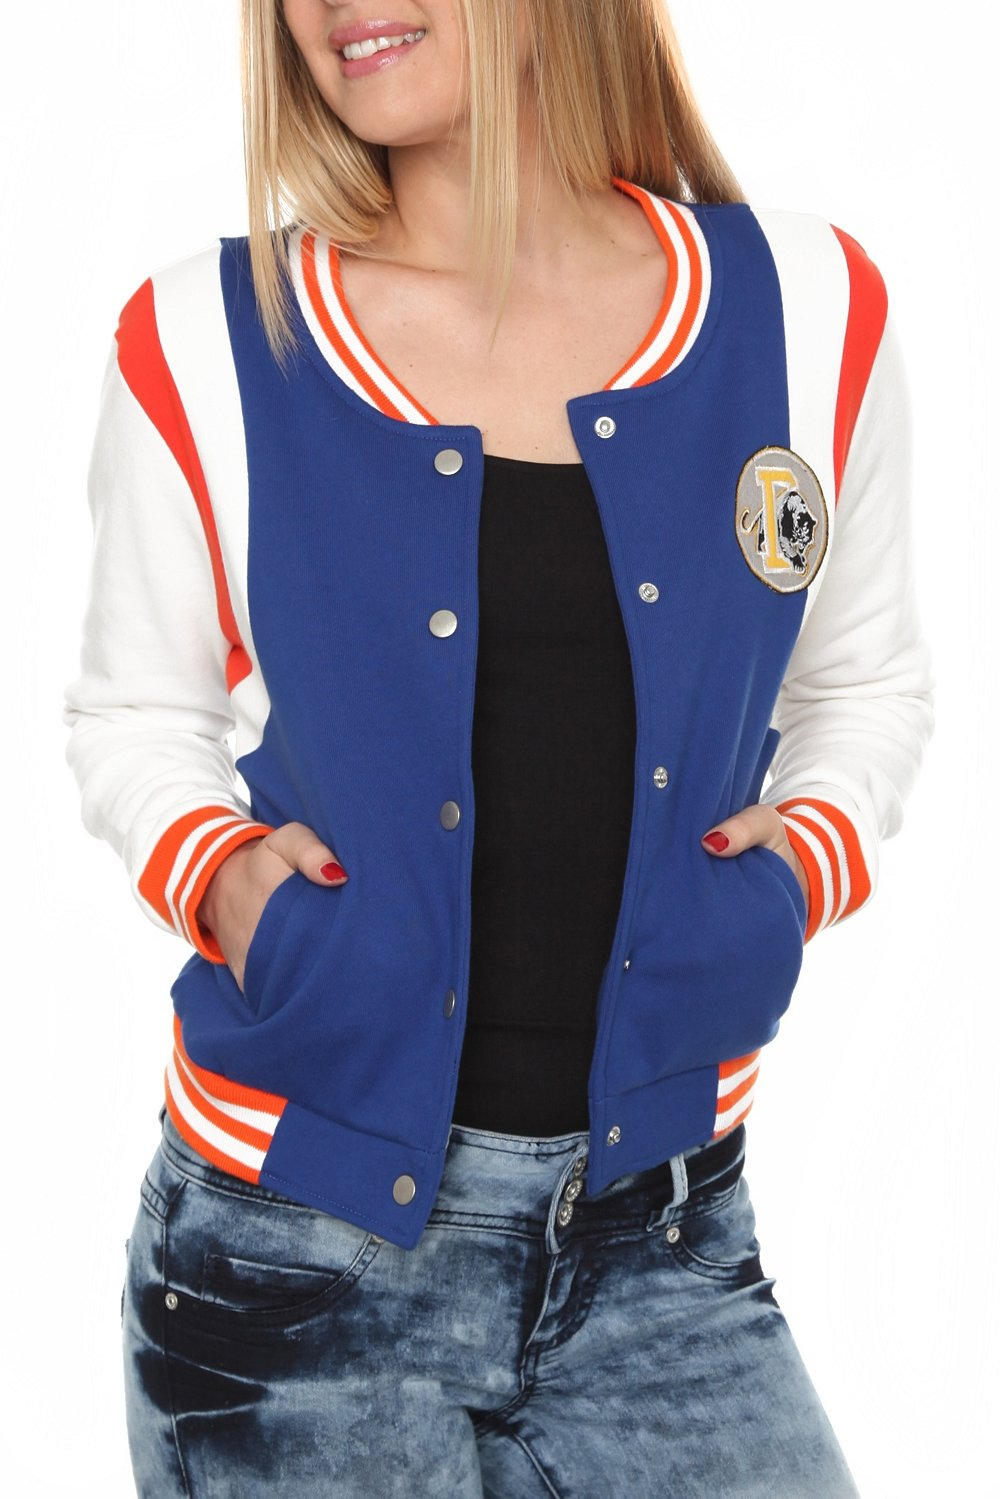 Jock Jackets for Girls | Coat Advisor